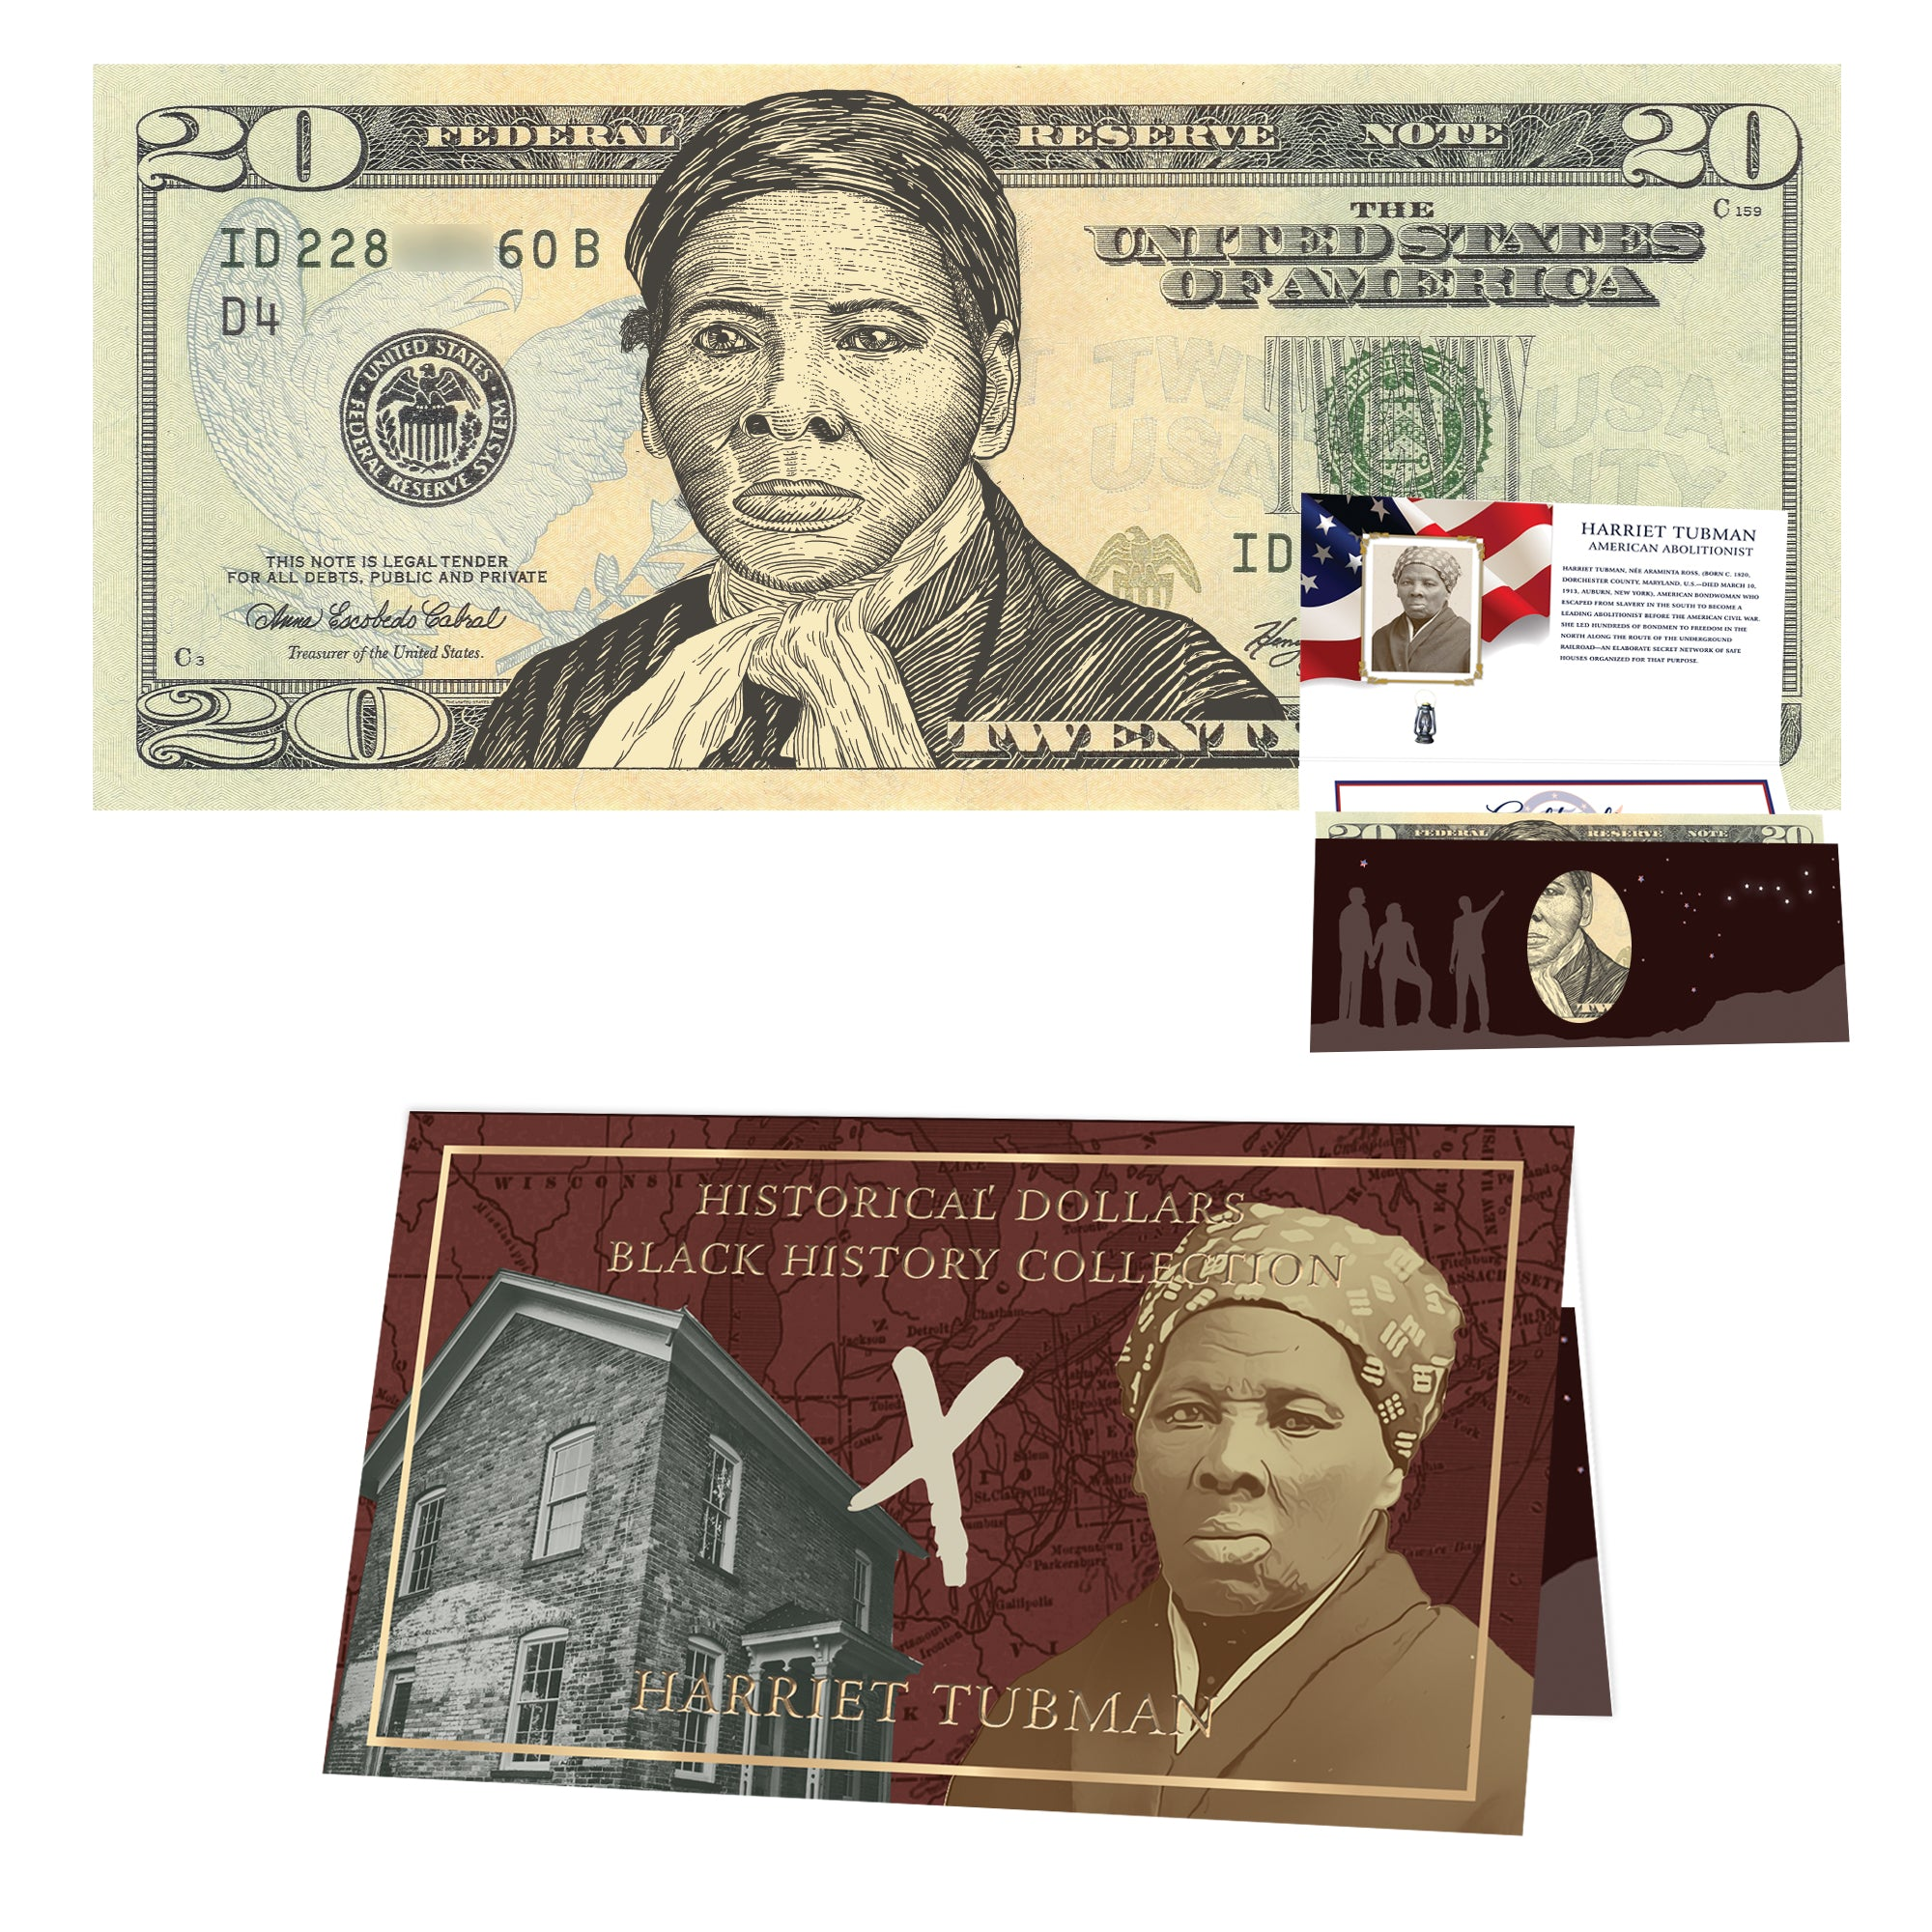 Official Harriet Tubman 20 0 Dollar Bill W Official Currency Card R Presidents Mint